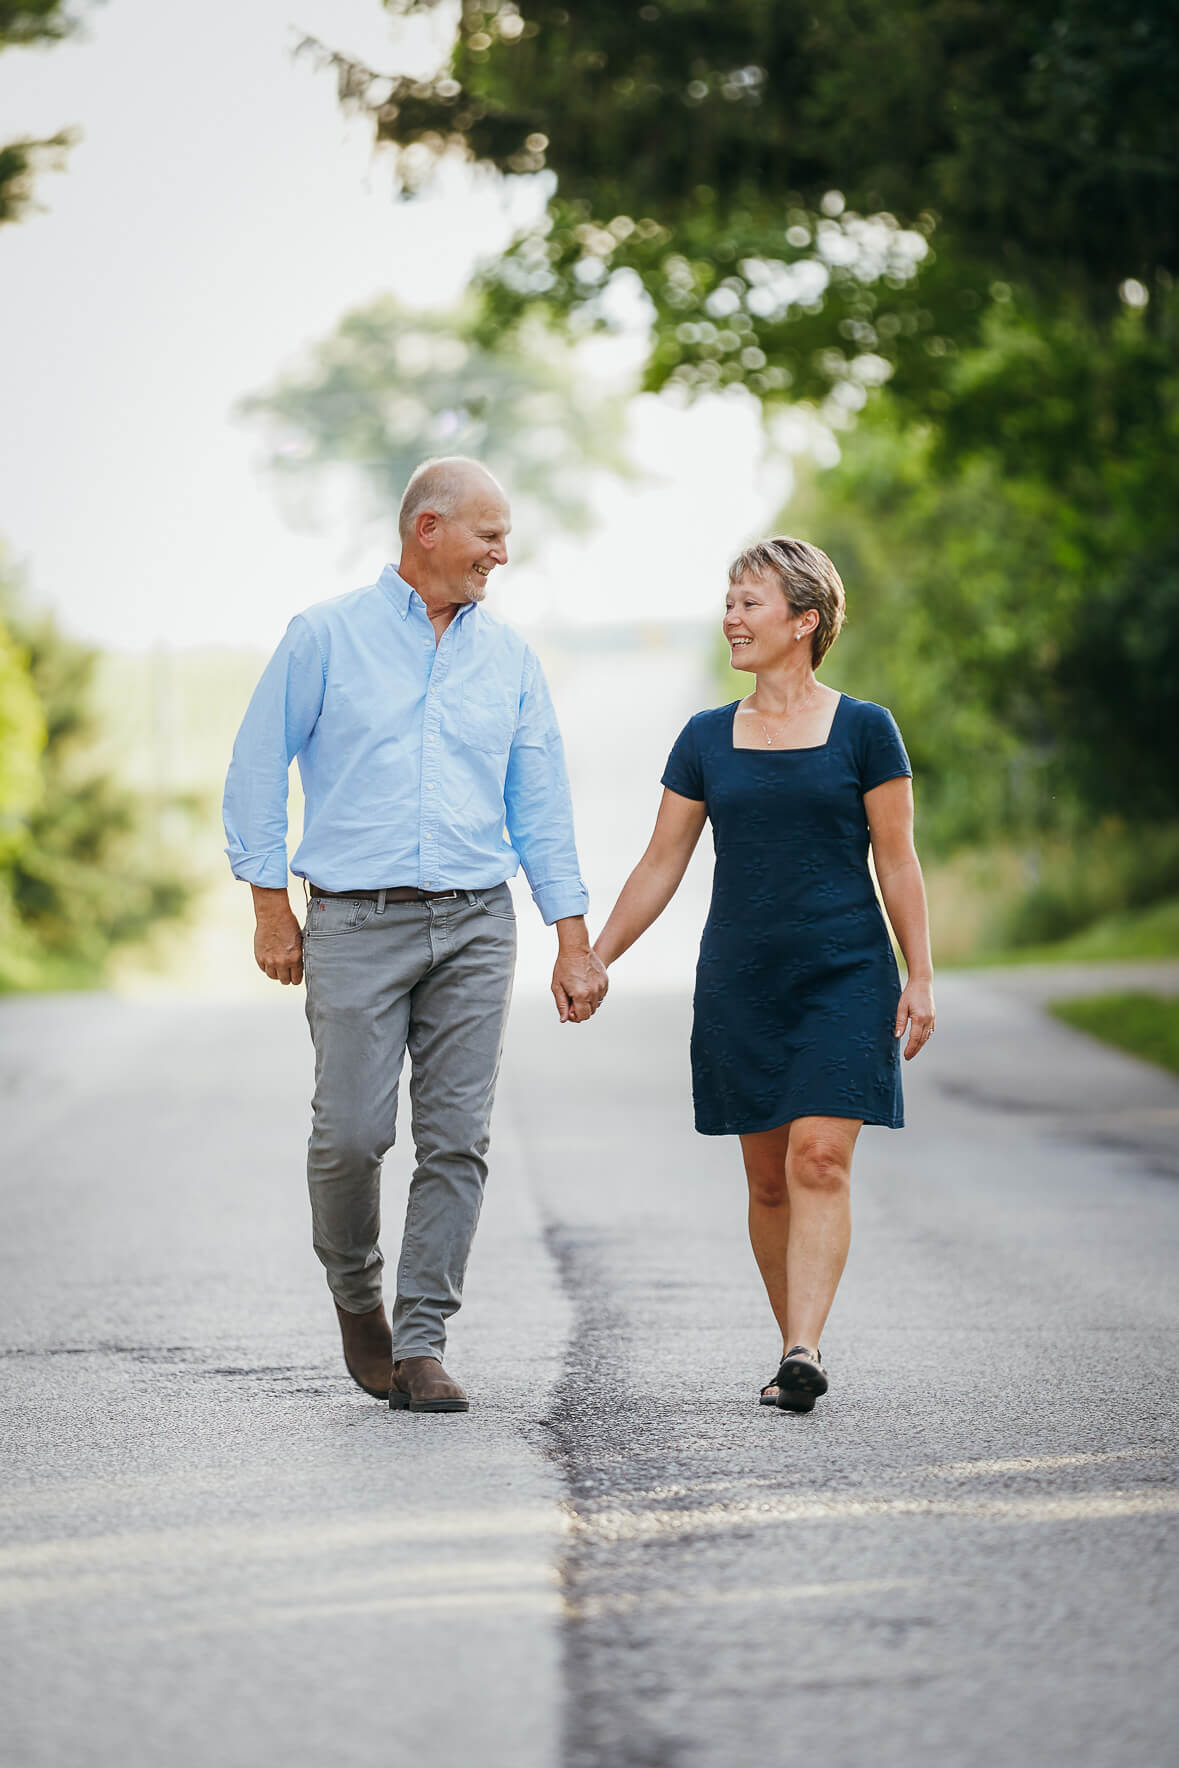 Husband and wife holding hands and laughing while walking on a road